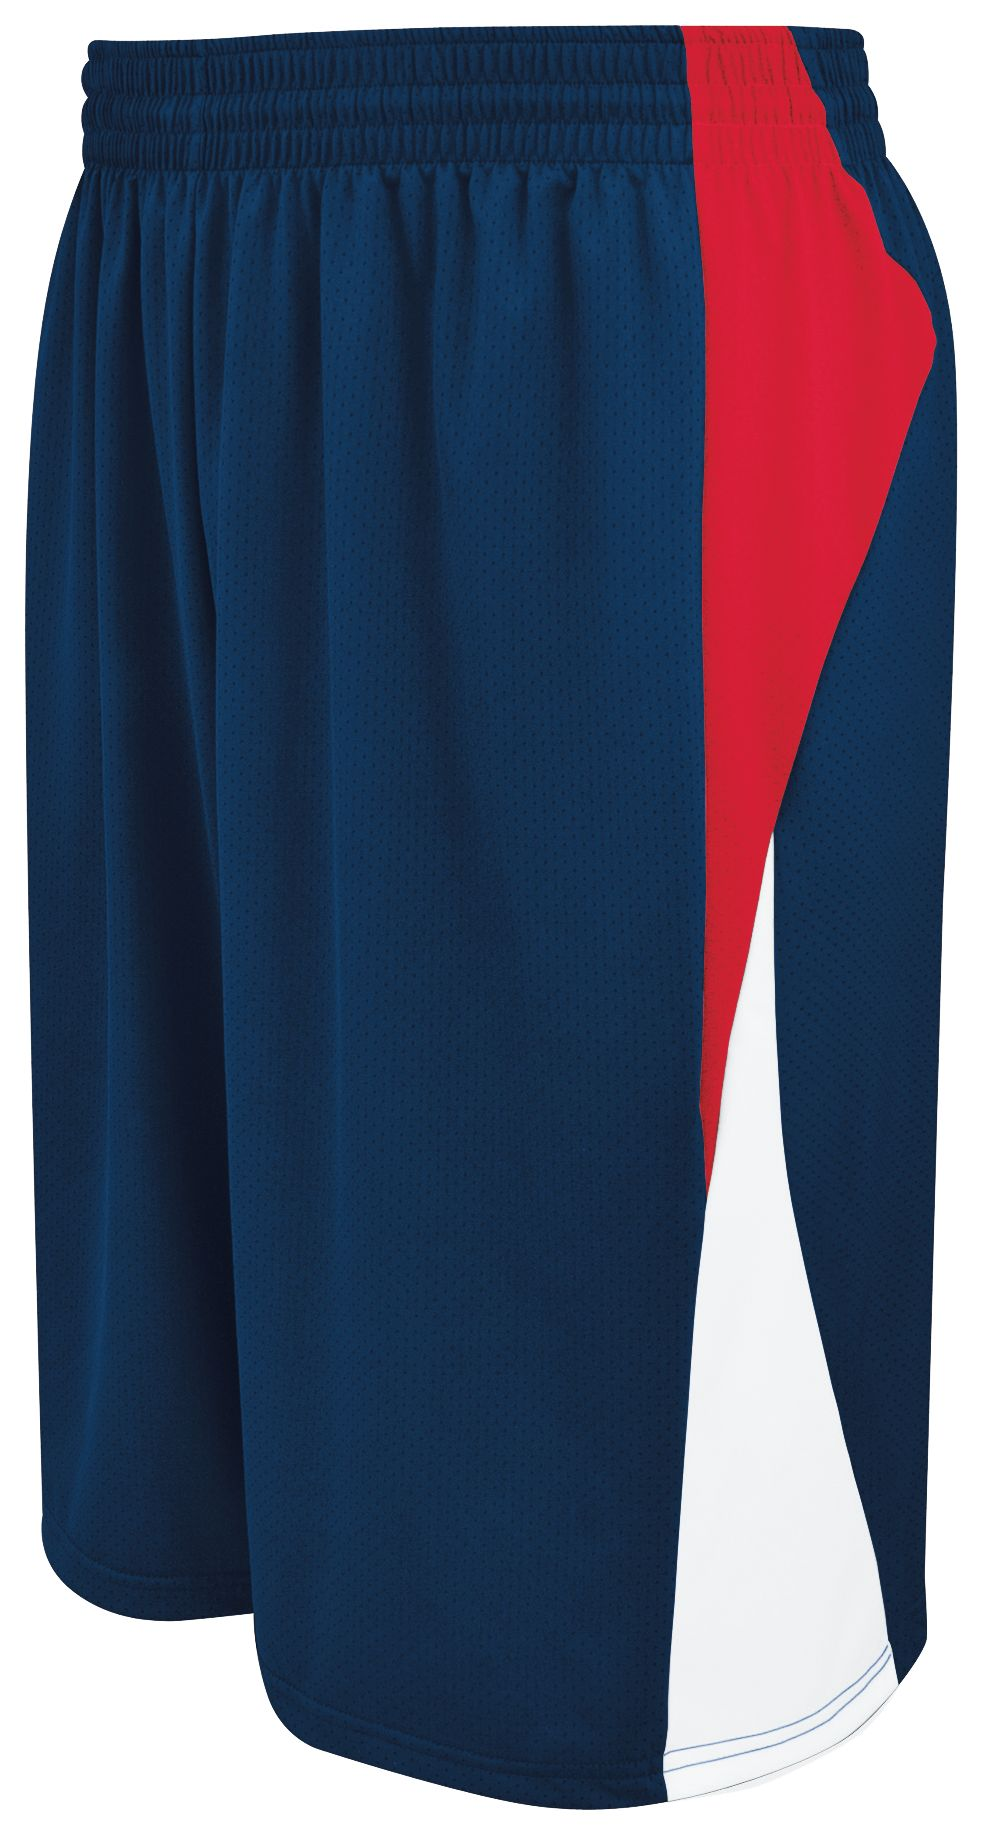 Youth Campus Reversible Shorts - NAVY/SCARLET/WHITE